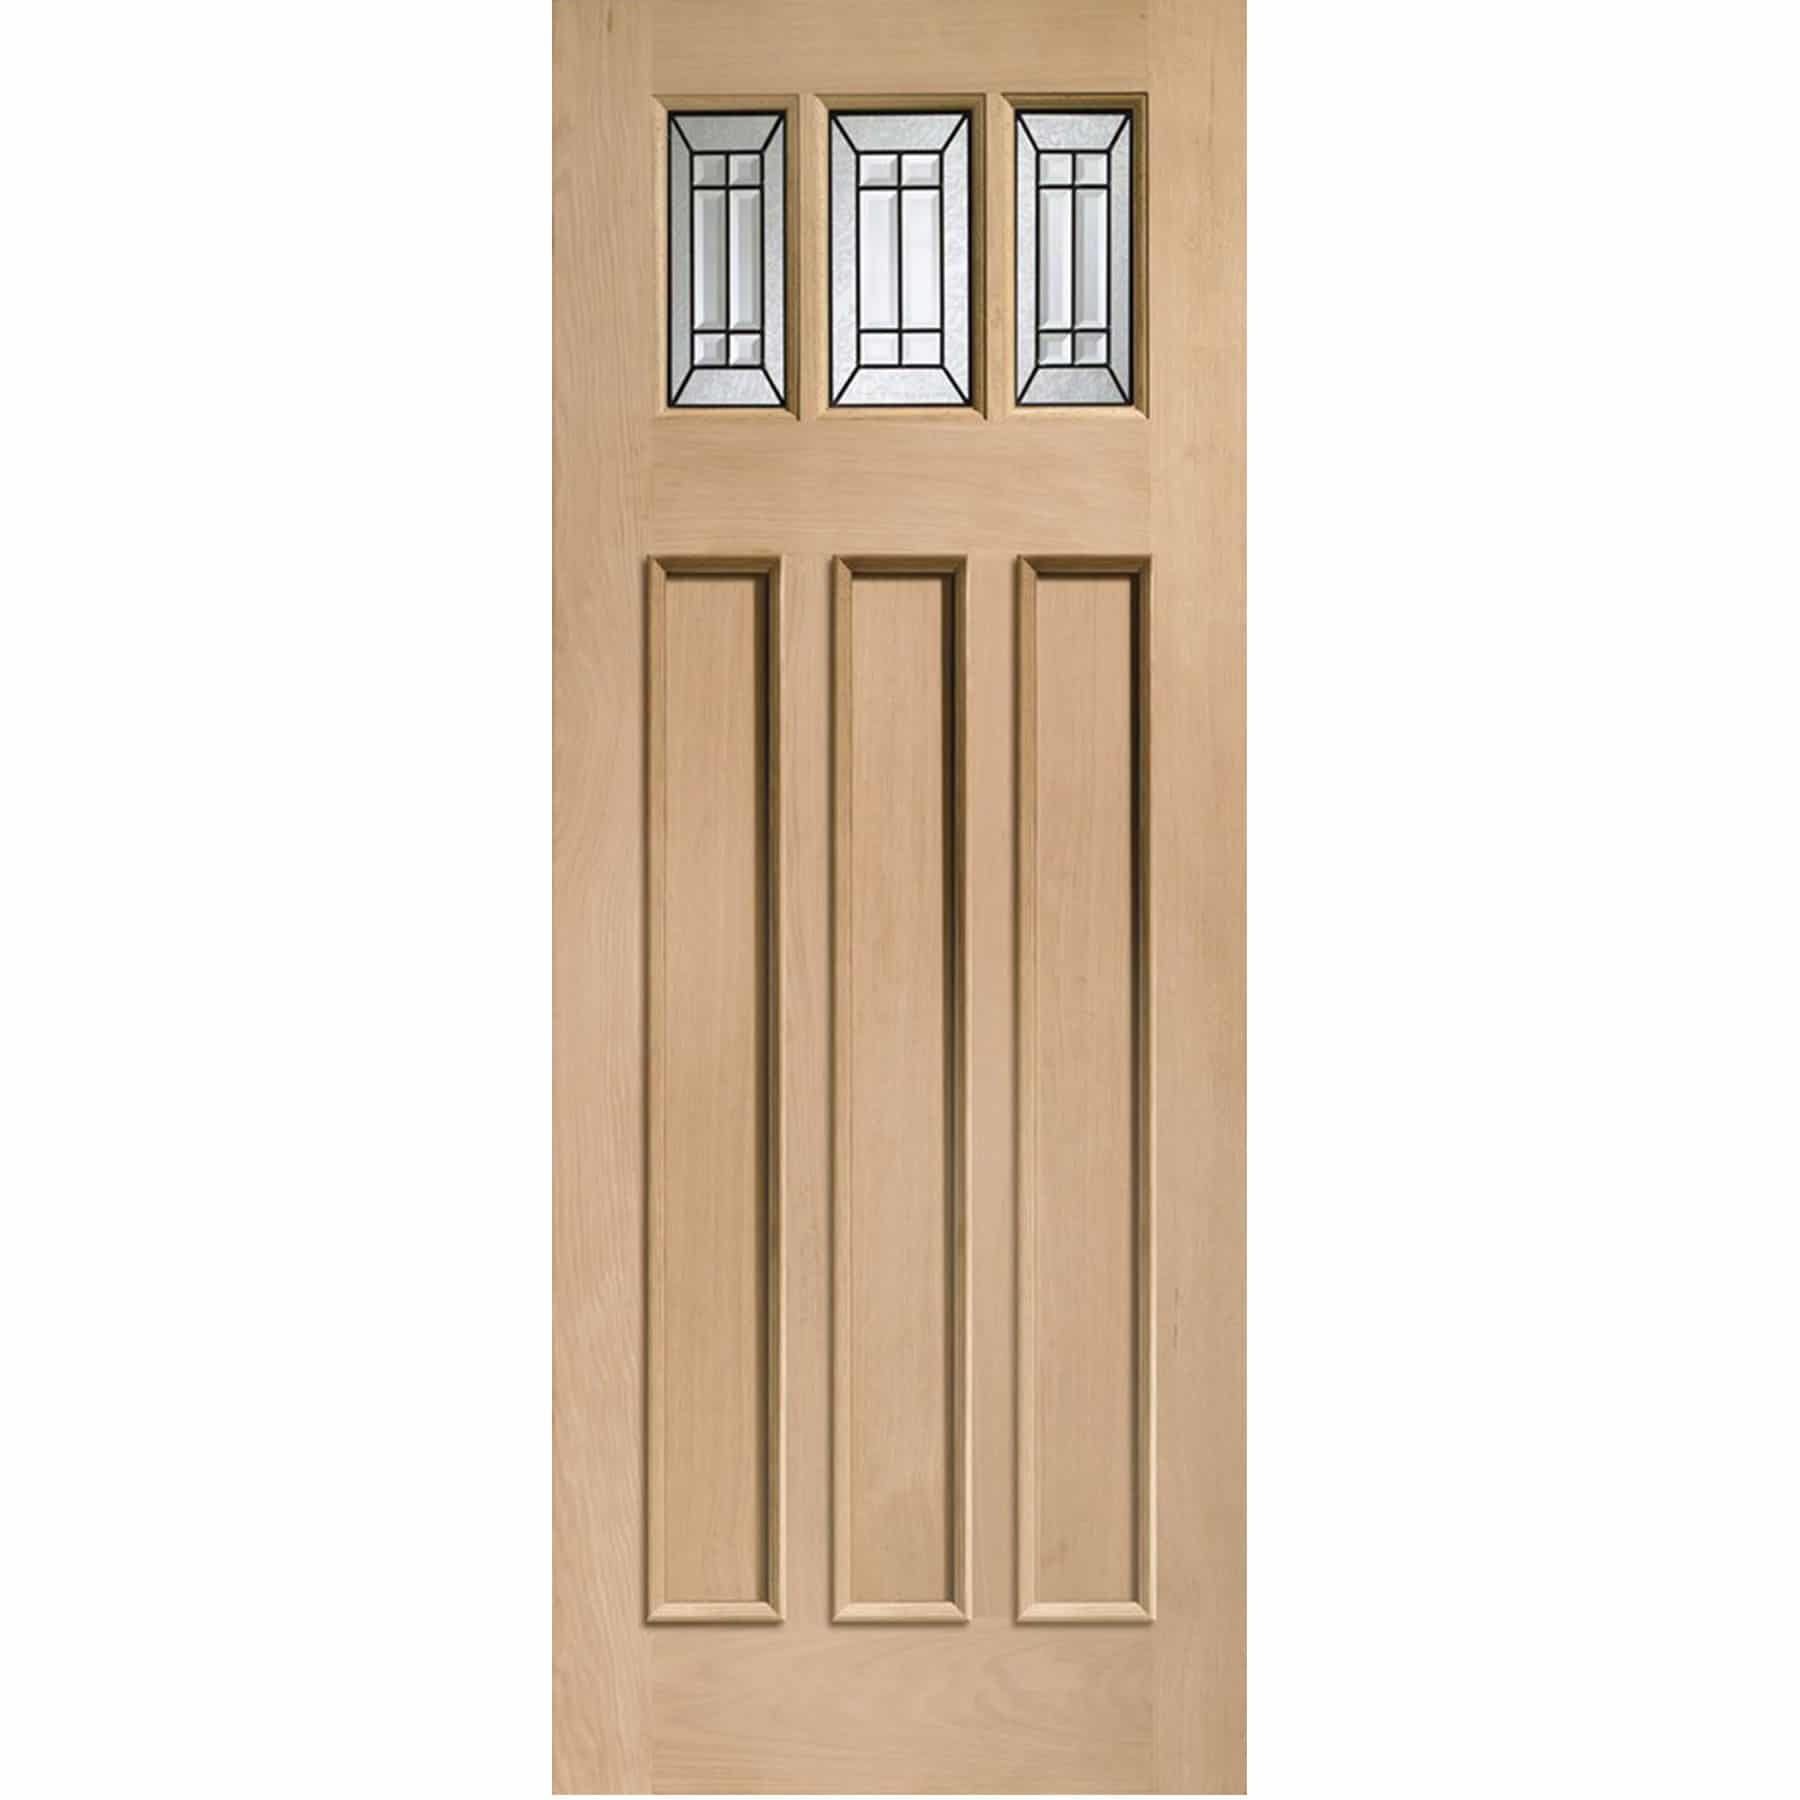 XL Joinery Balmoral Jade Triple Glazed External Oak Door (Mu0026T) with Black Caming -  sc 1 st  Shawfield Doors & XL Joinery Balmoral Jade Triple Glazed External Oak Door (Mu0026T) with ...